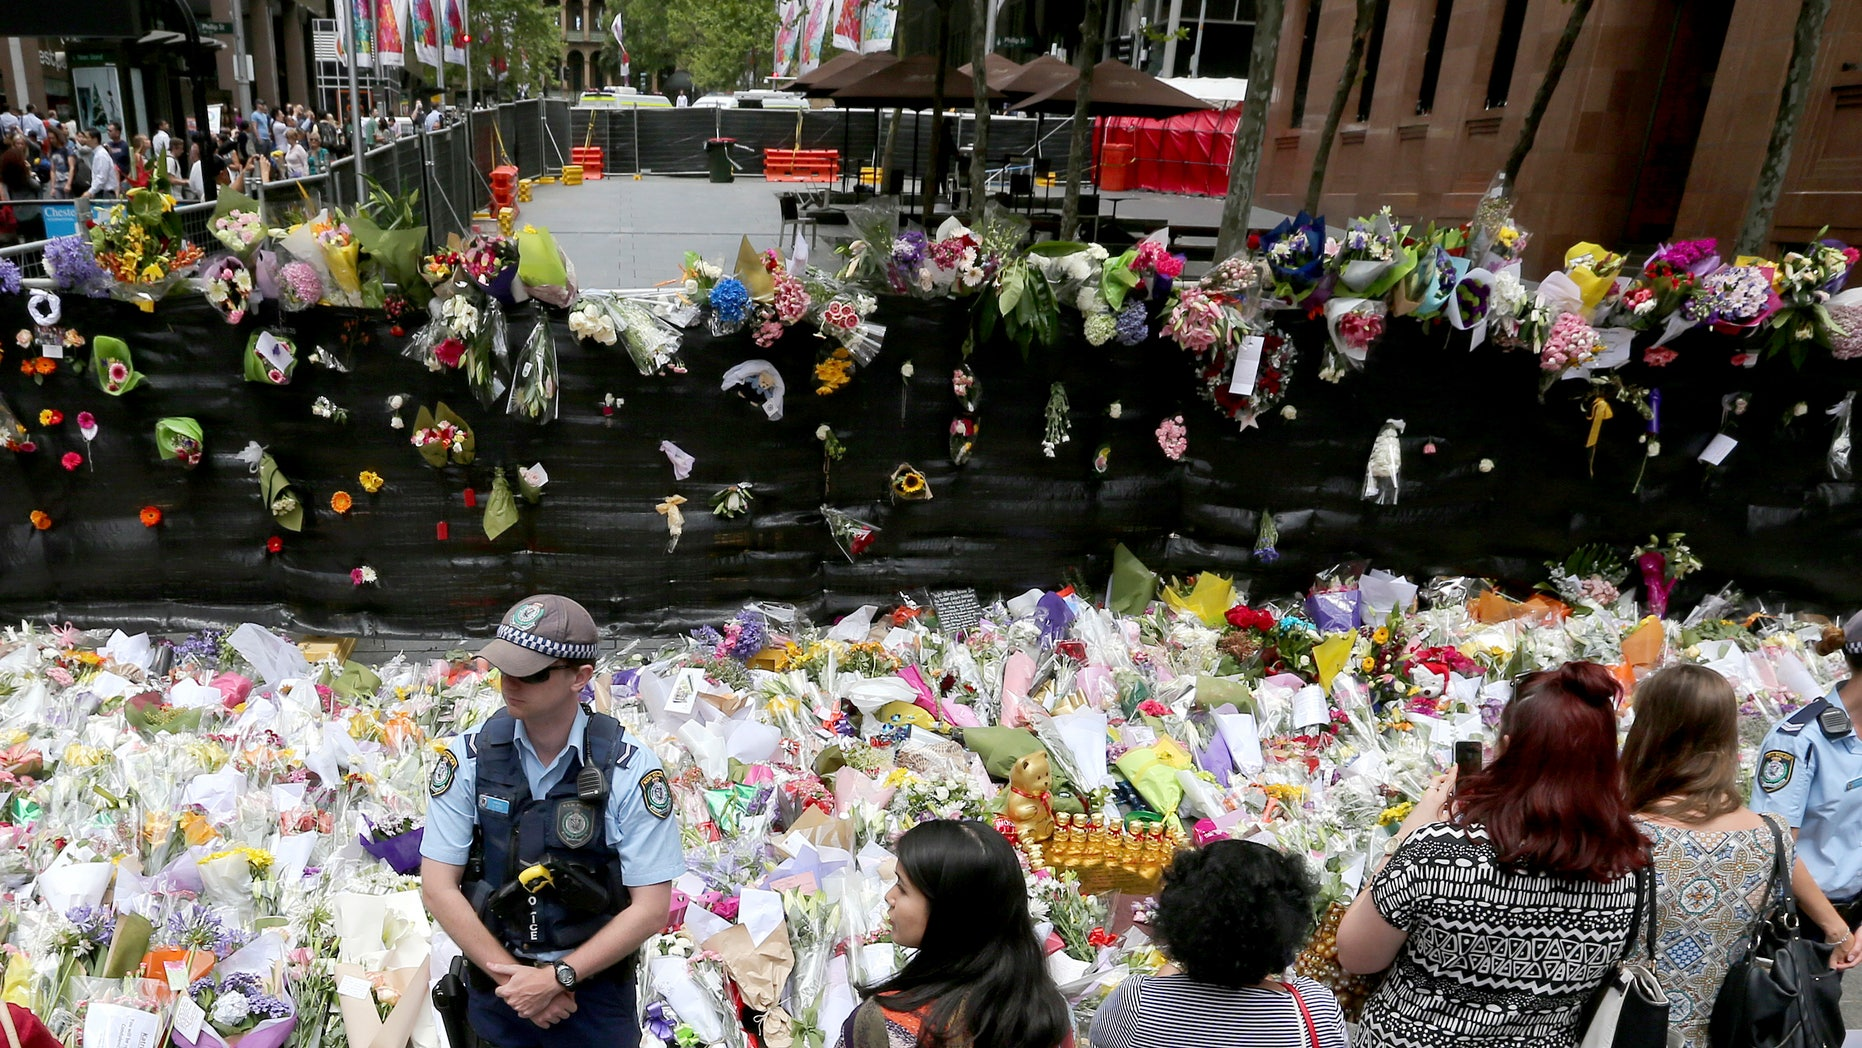 Dec. 17, 2014: Police stand watch over flower tributes to the shooting victims on the footpath outside the the cordoned off area outside the Lindt cafe in the central business district of Sydney.